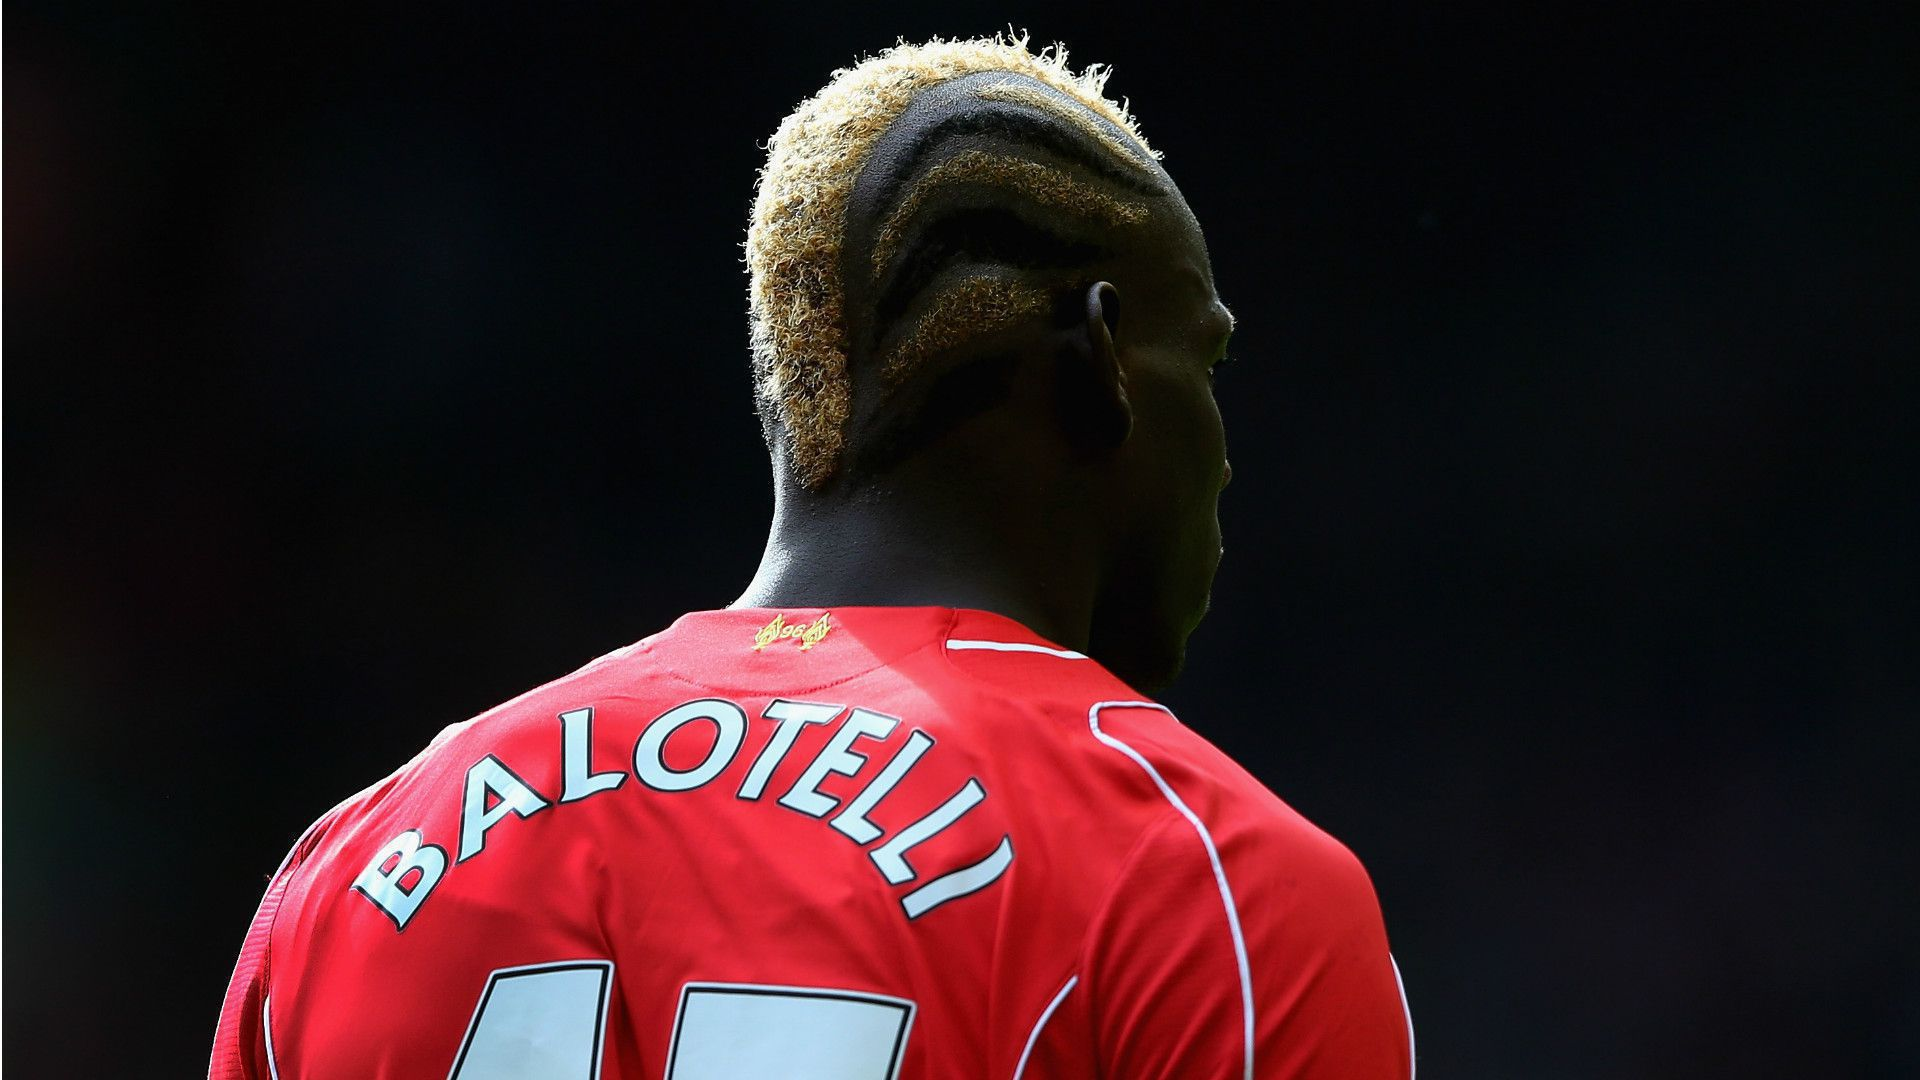 Balotelli High Definition Wallpapers